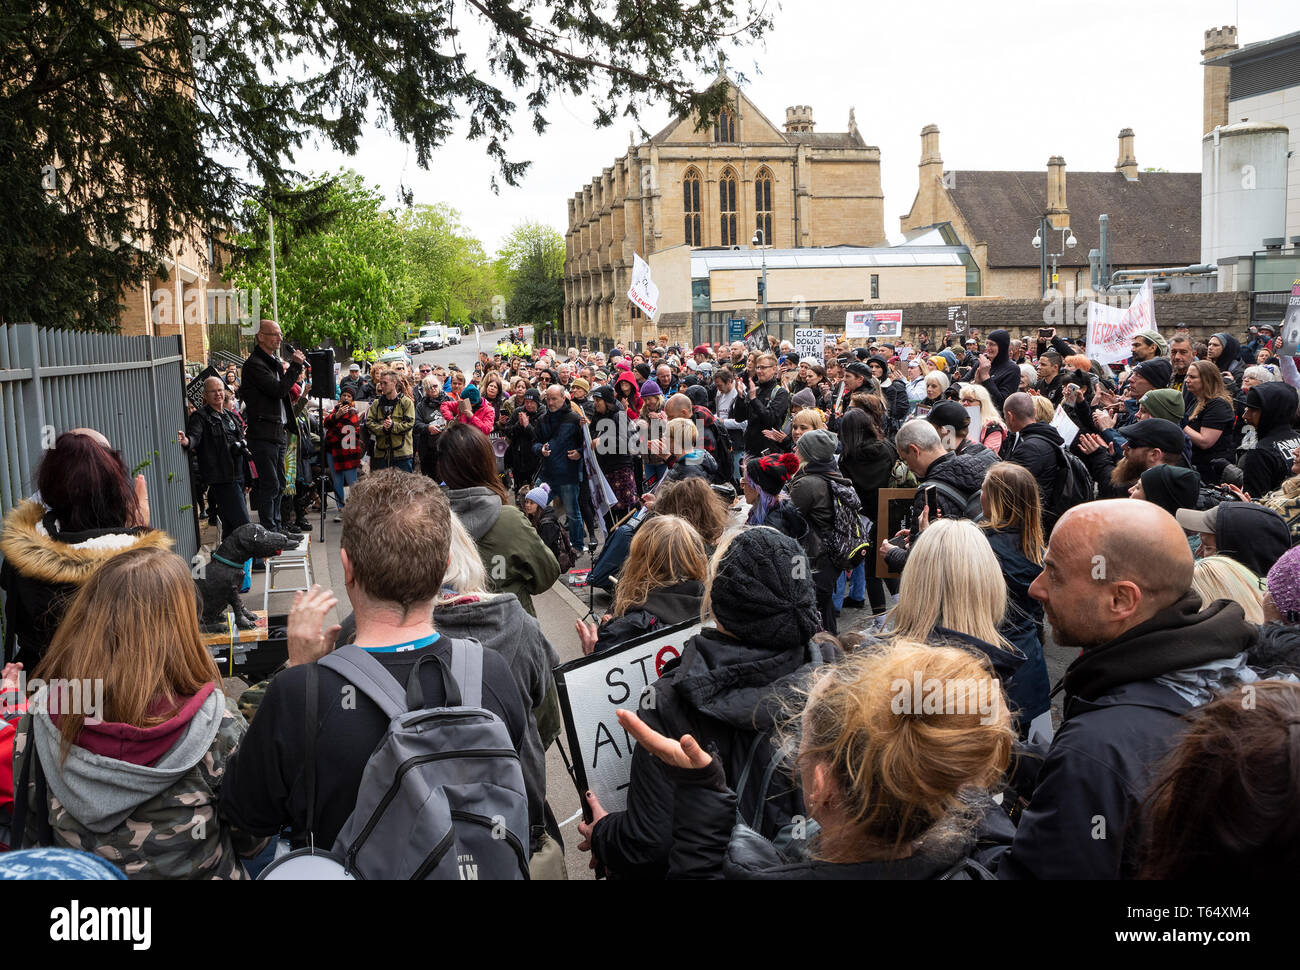 Oxford World Day for Animals in Laboratories. Animal rights activist Mel Broughton speaking at the rally outside the Oxford University biomedical labs. - Stock Image